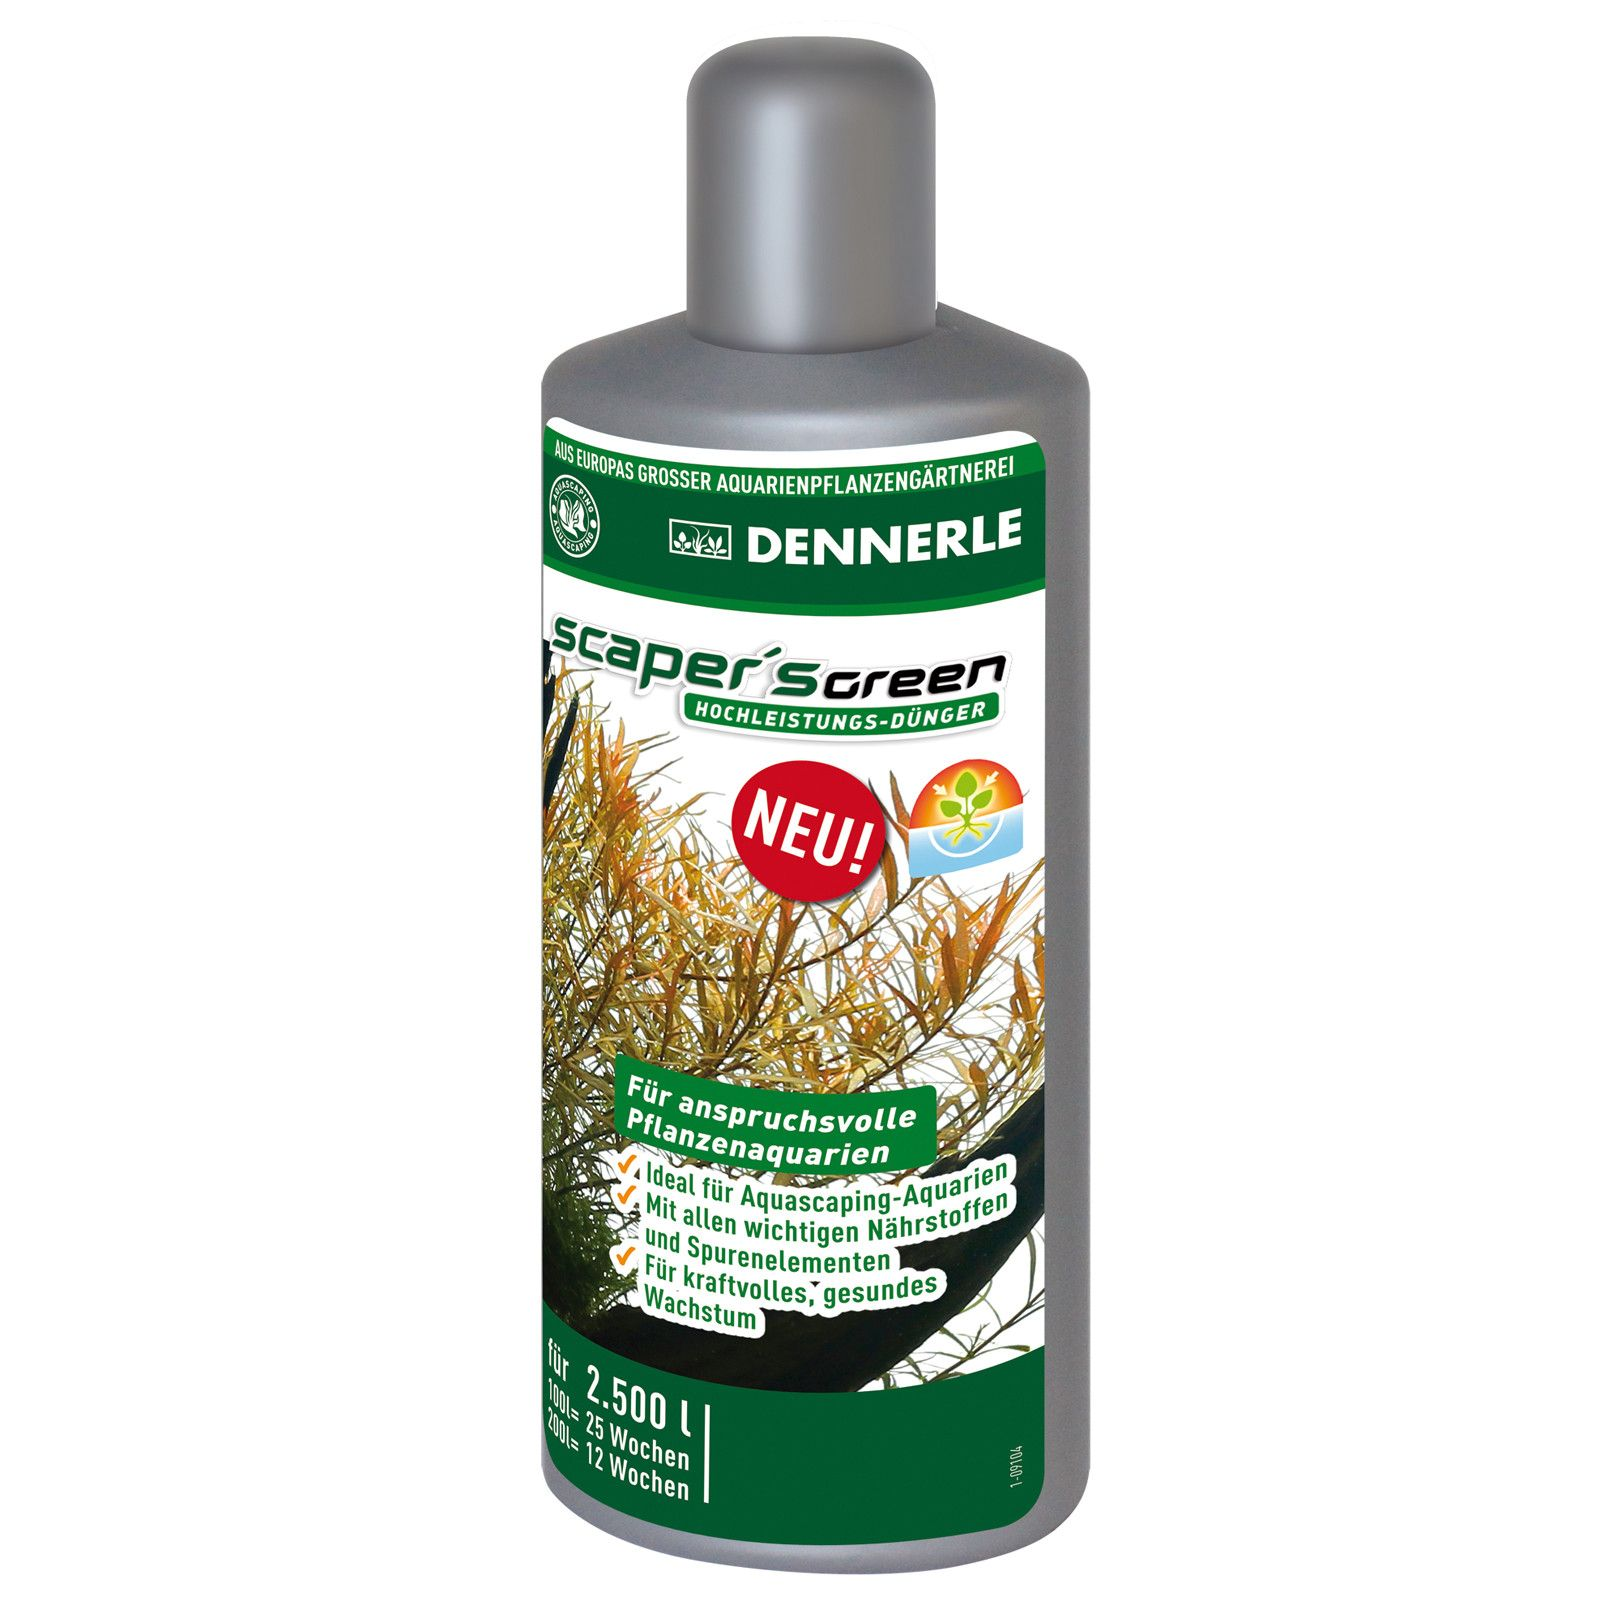 Dennerle - Scaper's Green - 100 ml